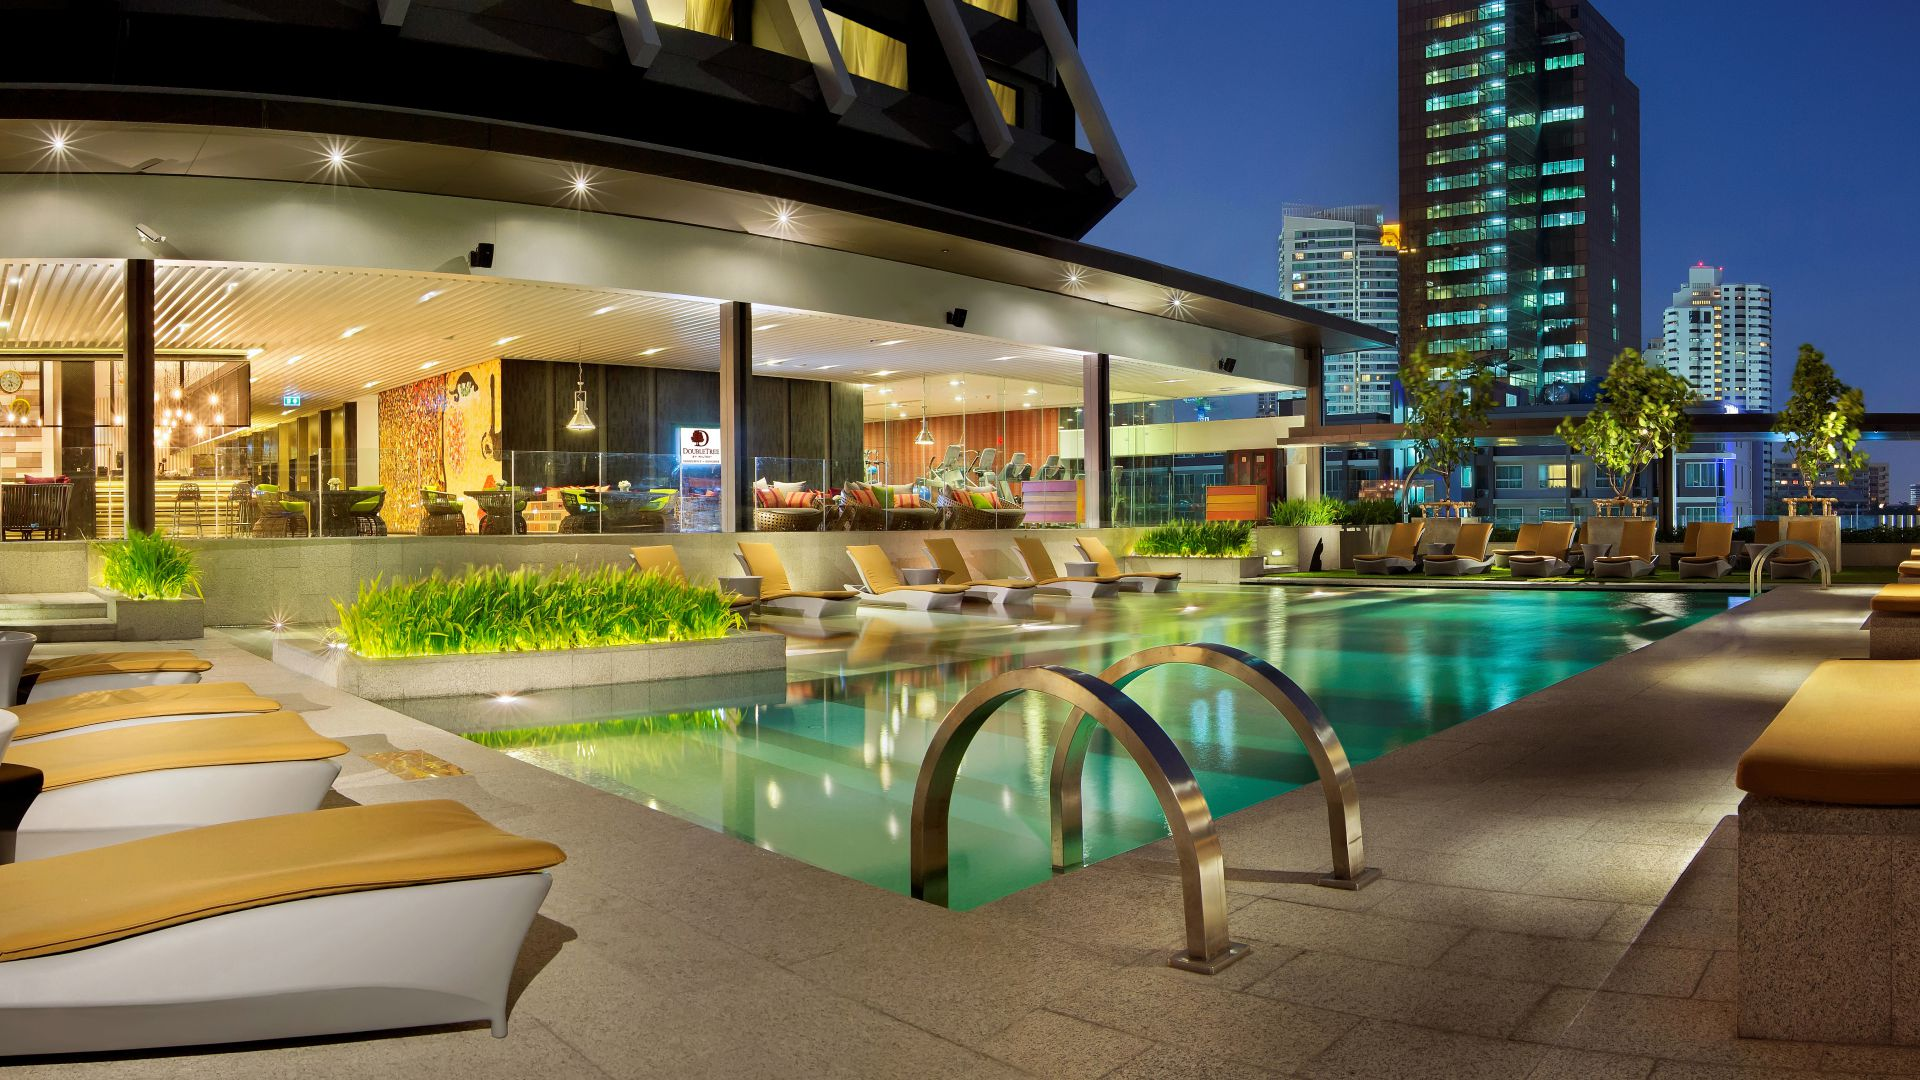 DoubleTree by Hilton Hotel, Bangkok, Thailand, Best hotels, tourism, travel, resort, booking, vacation, pool (horizontal)